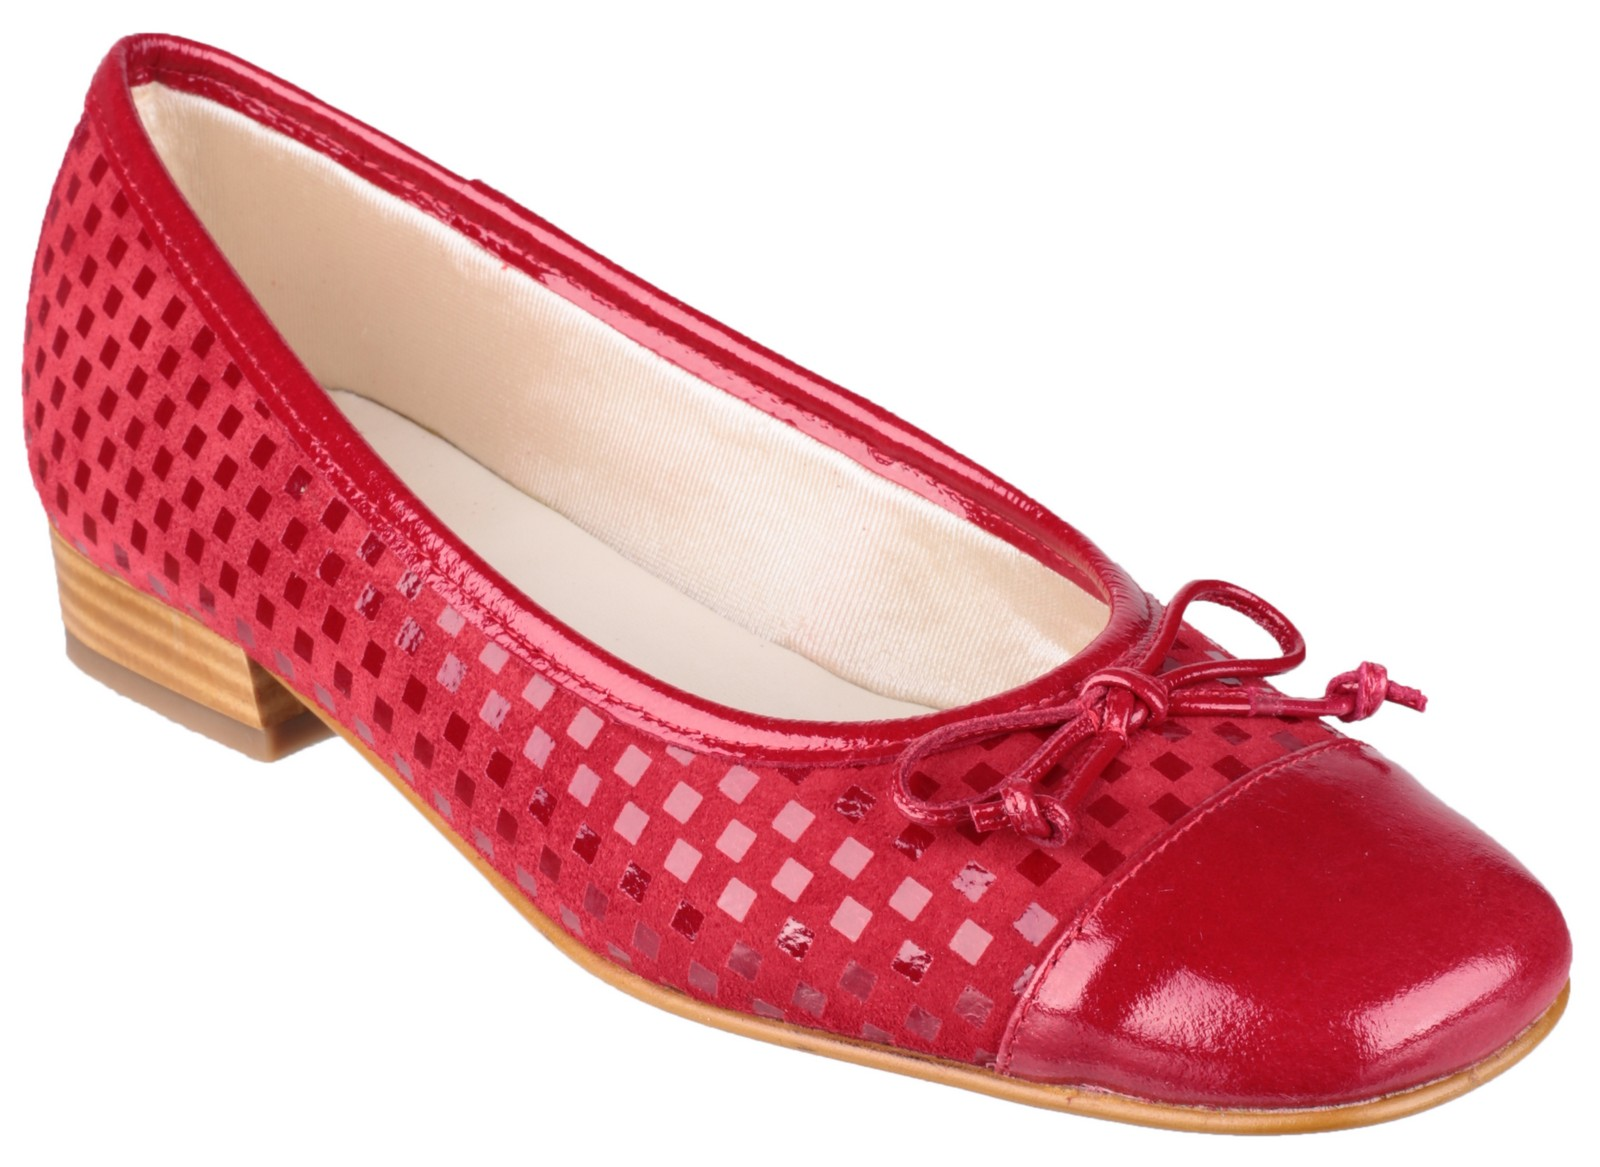 Riva Andros Patent/Suede Women's Ballerina Shoe Red - 40.5 nJqfZh